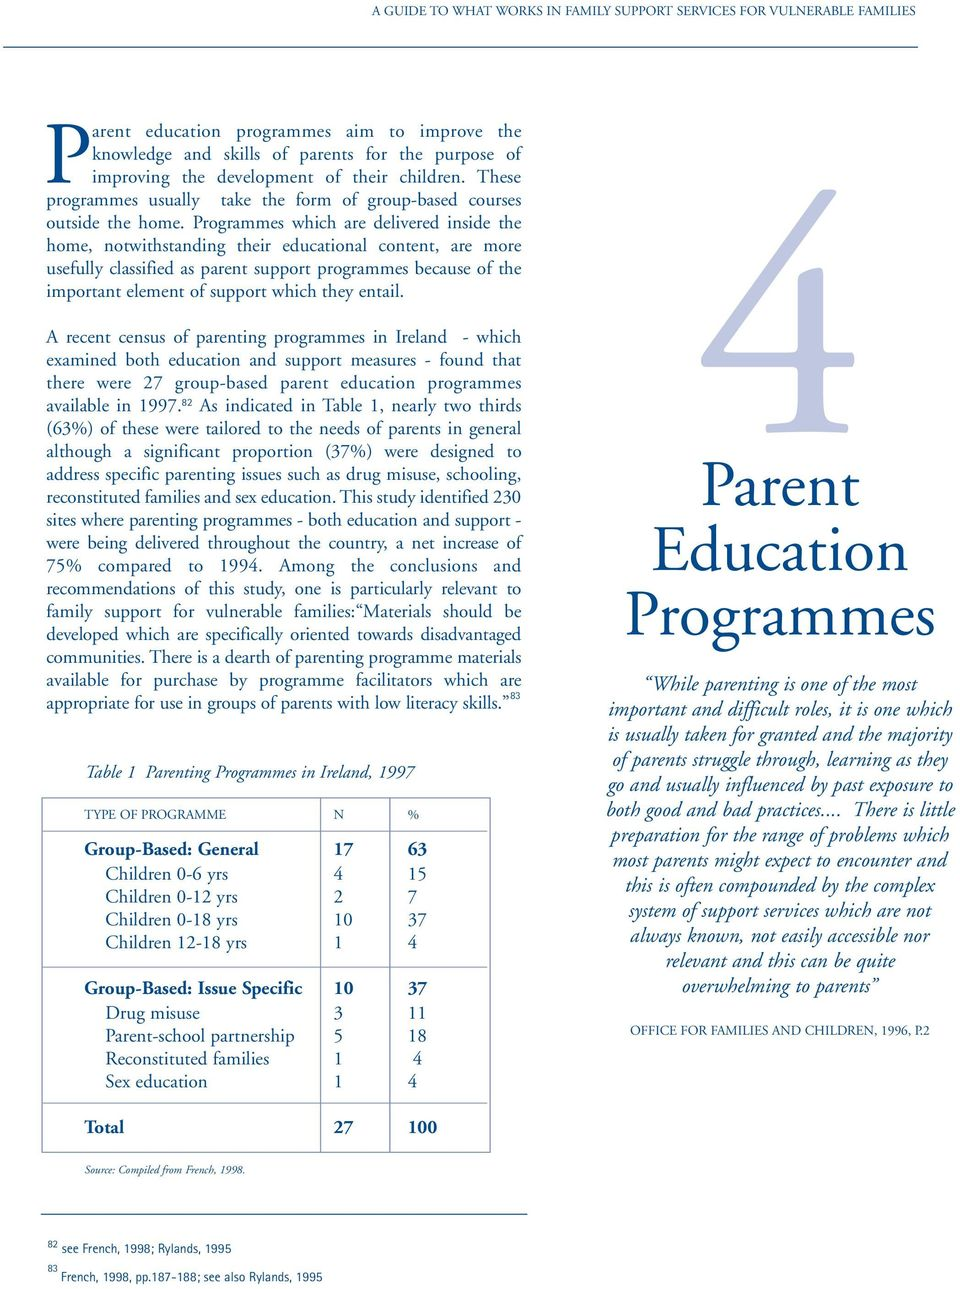 Programmes which are delivered inside the home, notwithstanding their educational content, are more usefully classified as parent support programmes because of the important element of support which